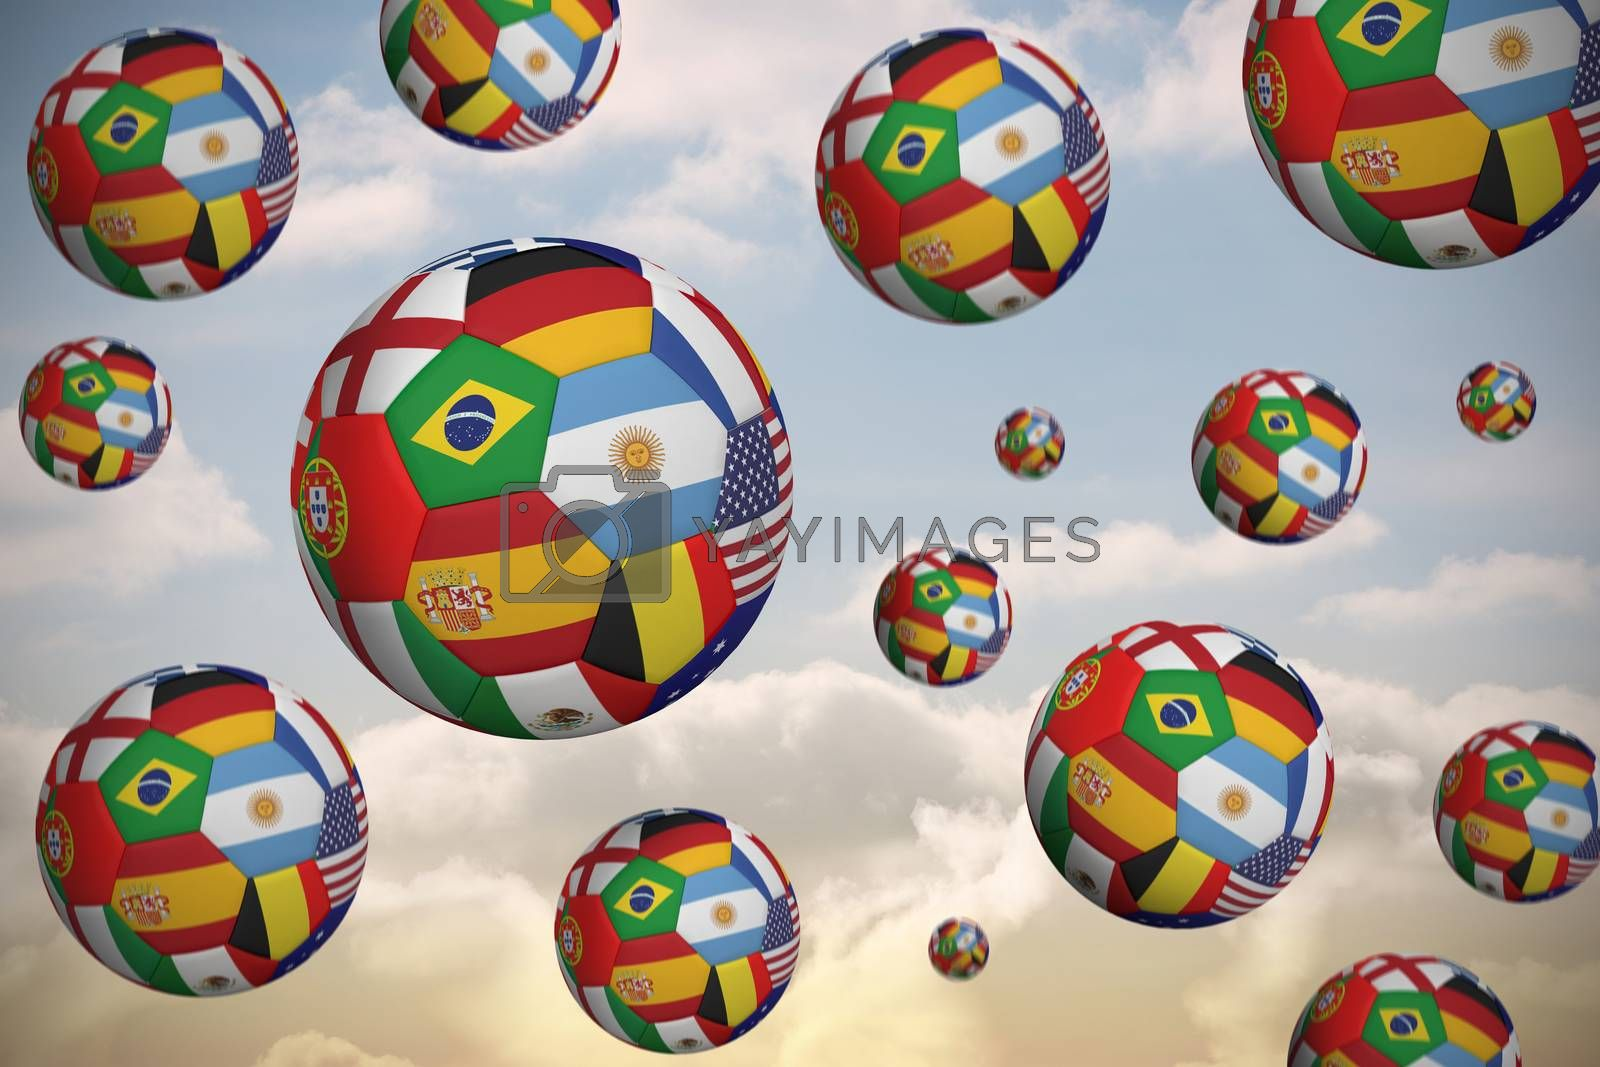 Footballs in international flags by Wavebreakmedia